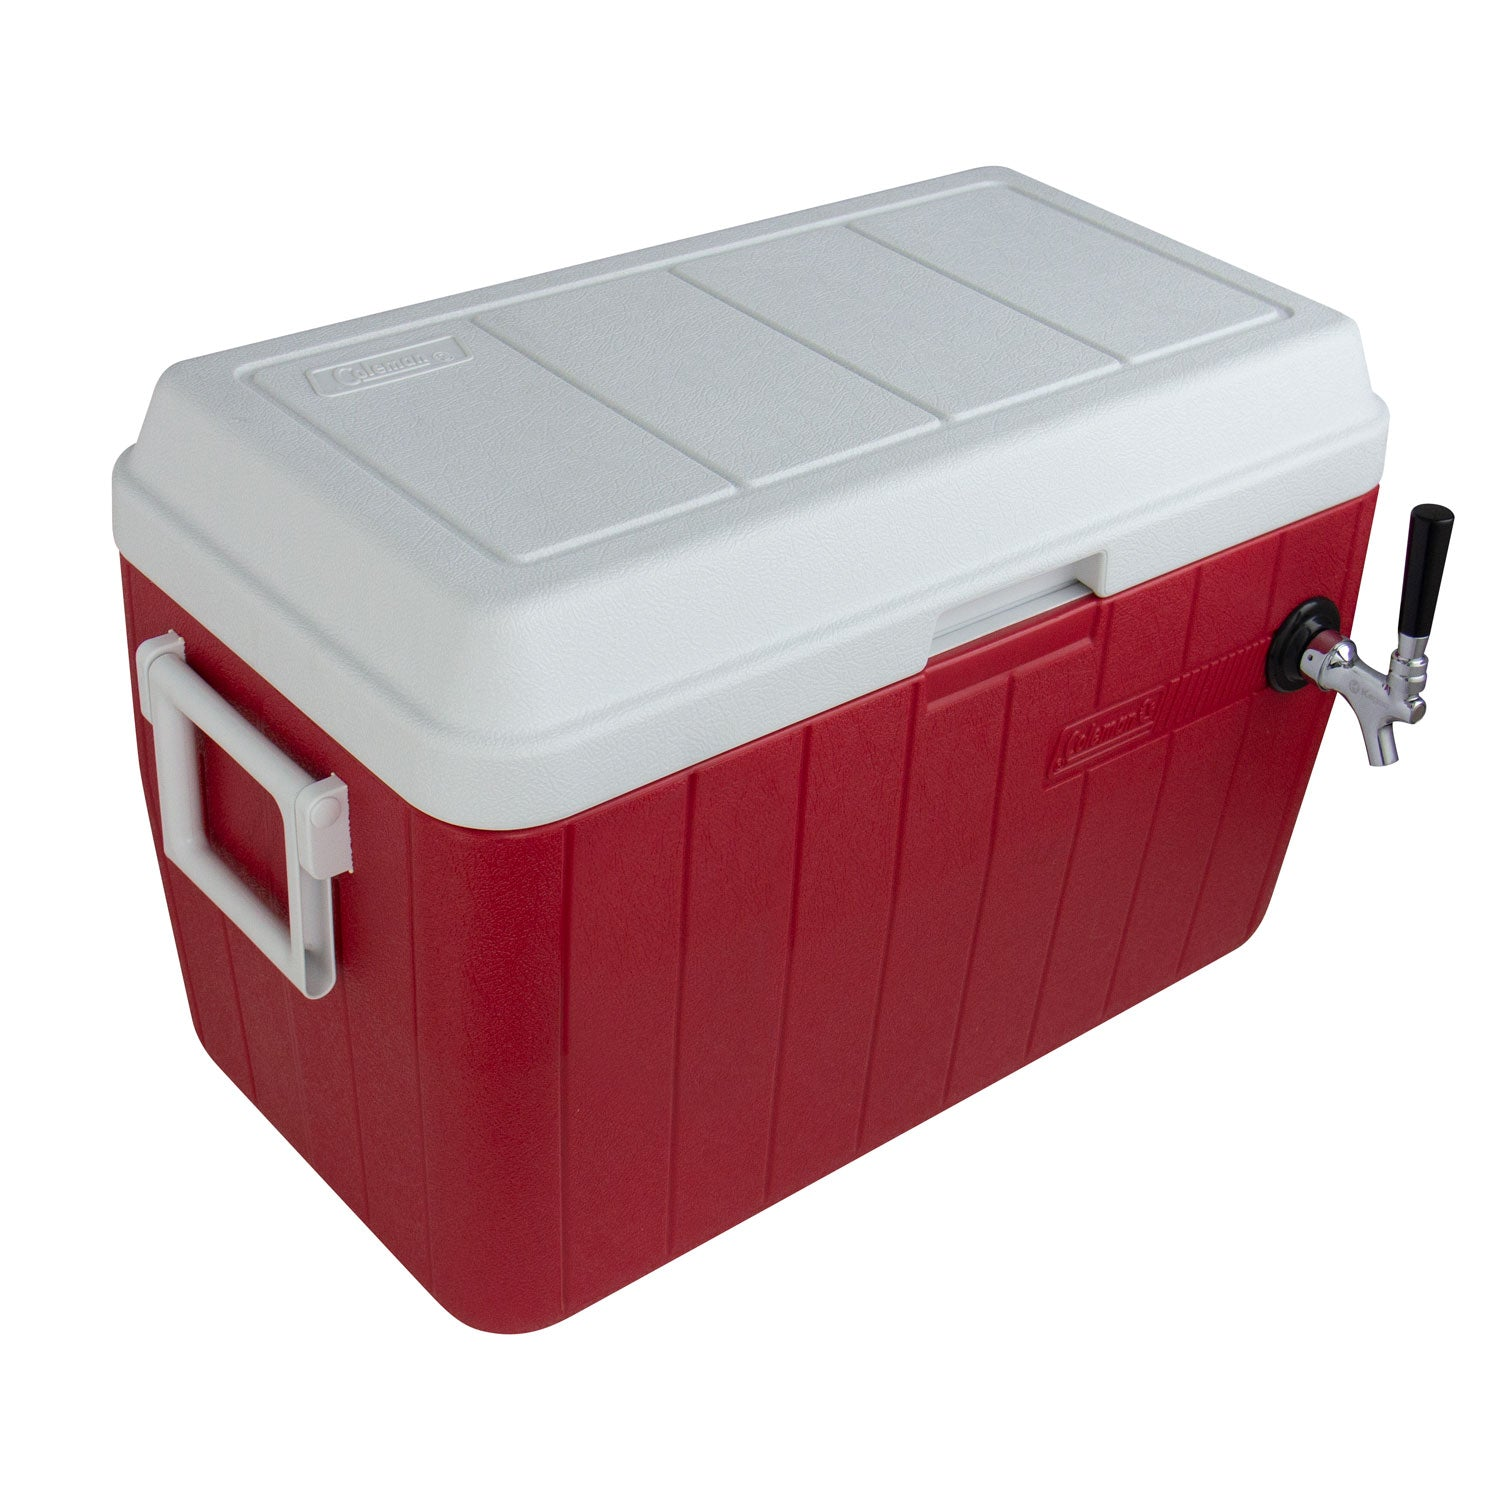 Red Single Tap 54 Qt. Beer Jockey Box with Side Mounted Faucet